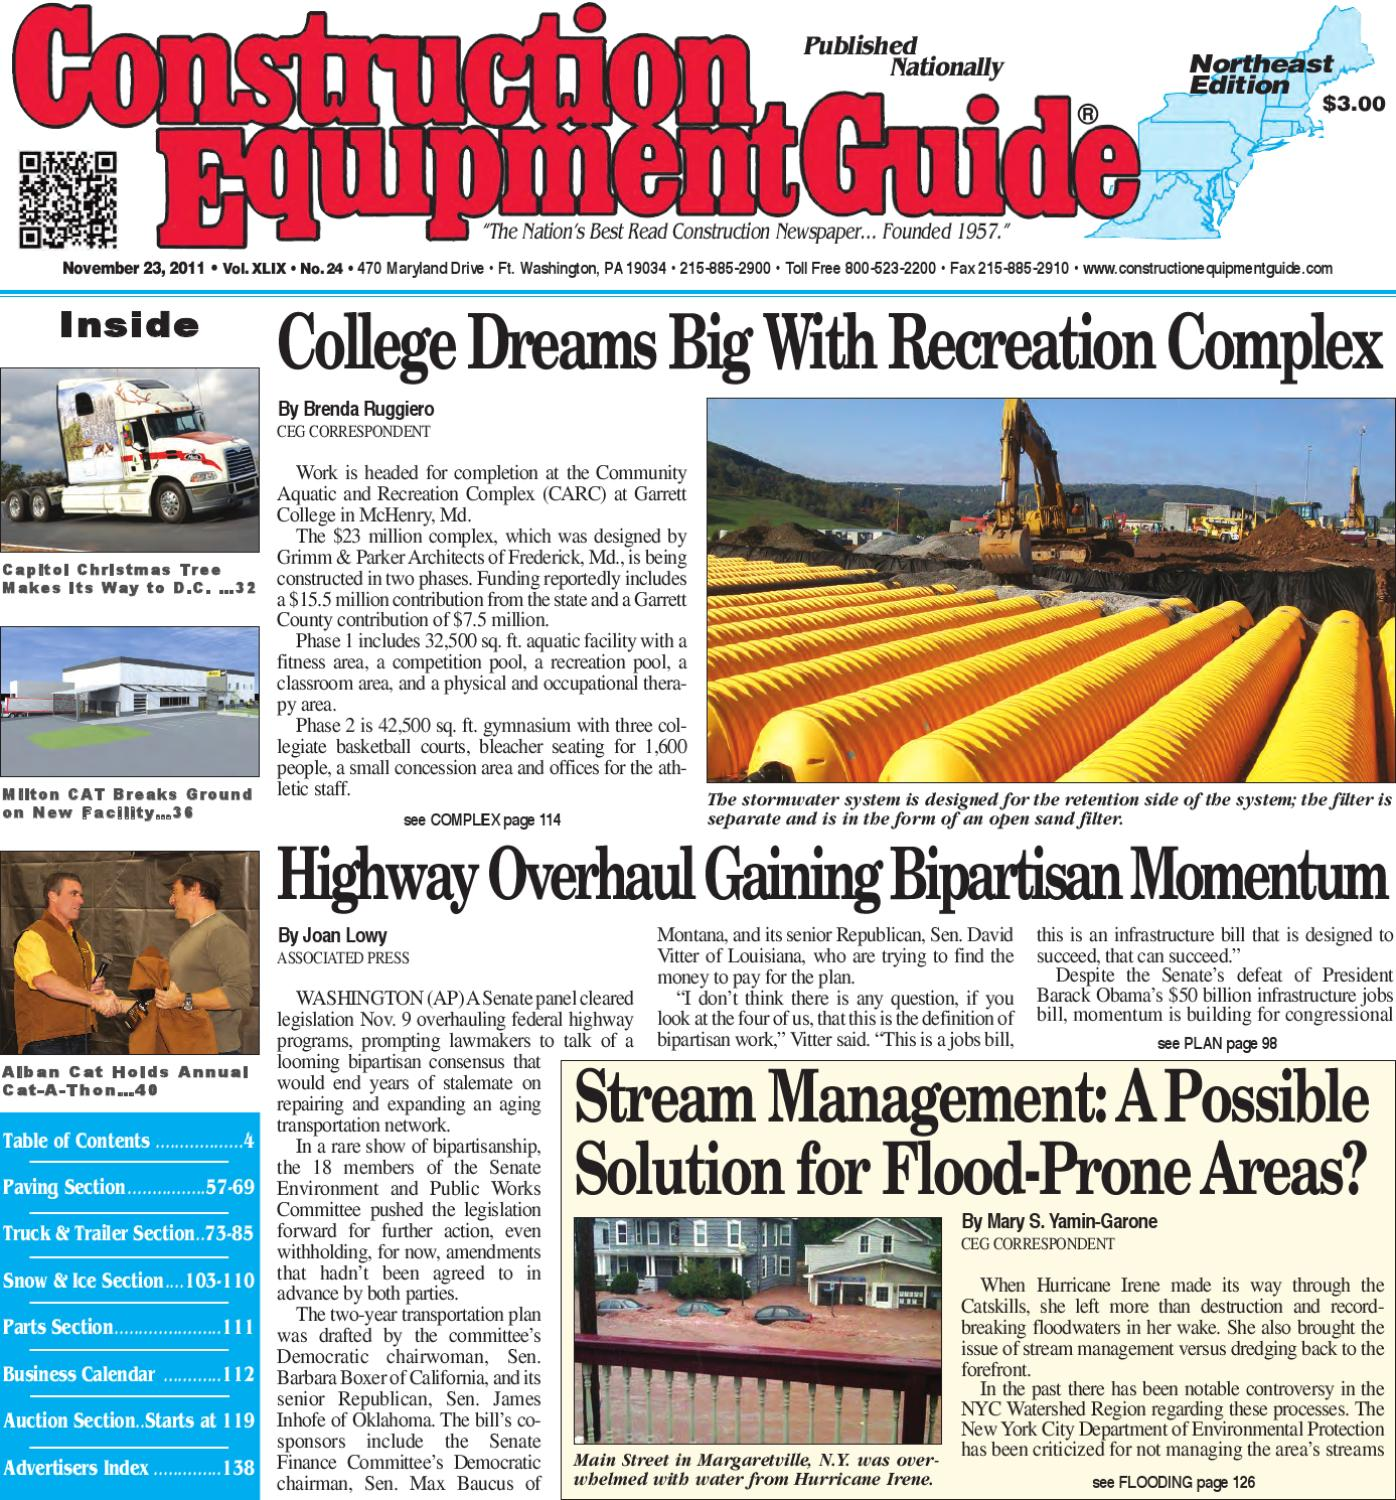 Northeast #24 2011 by Construction Equipment Guide - issuu